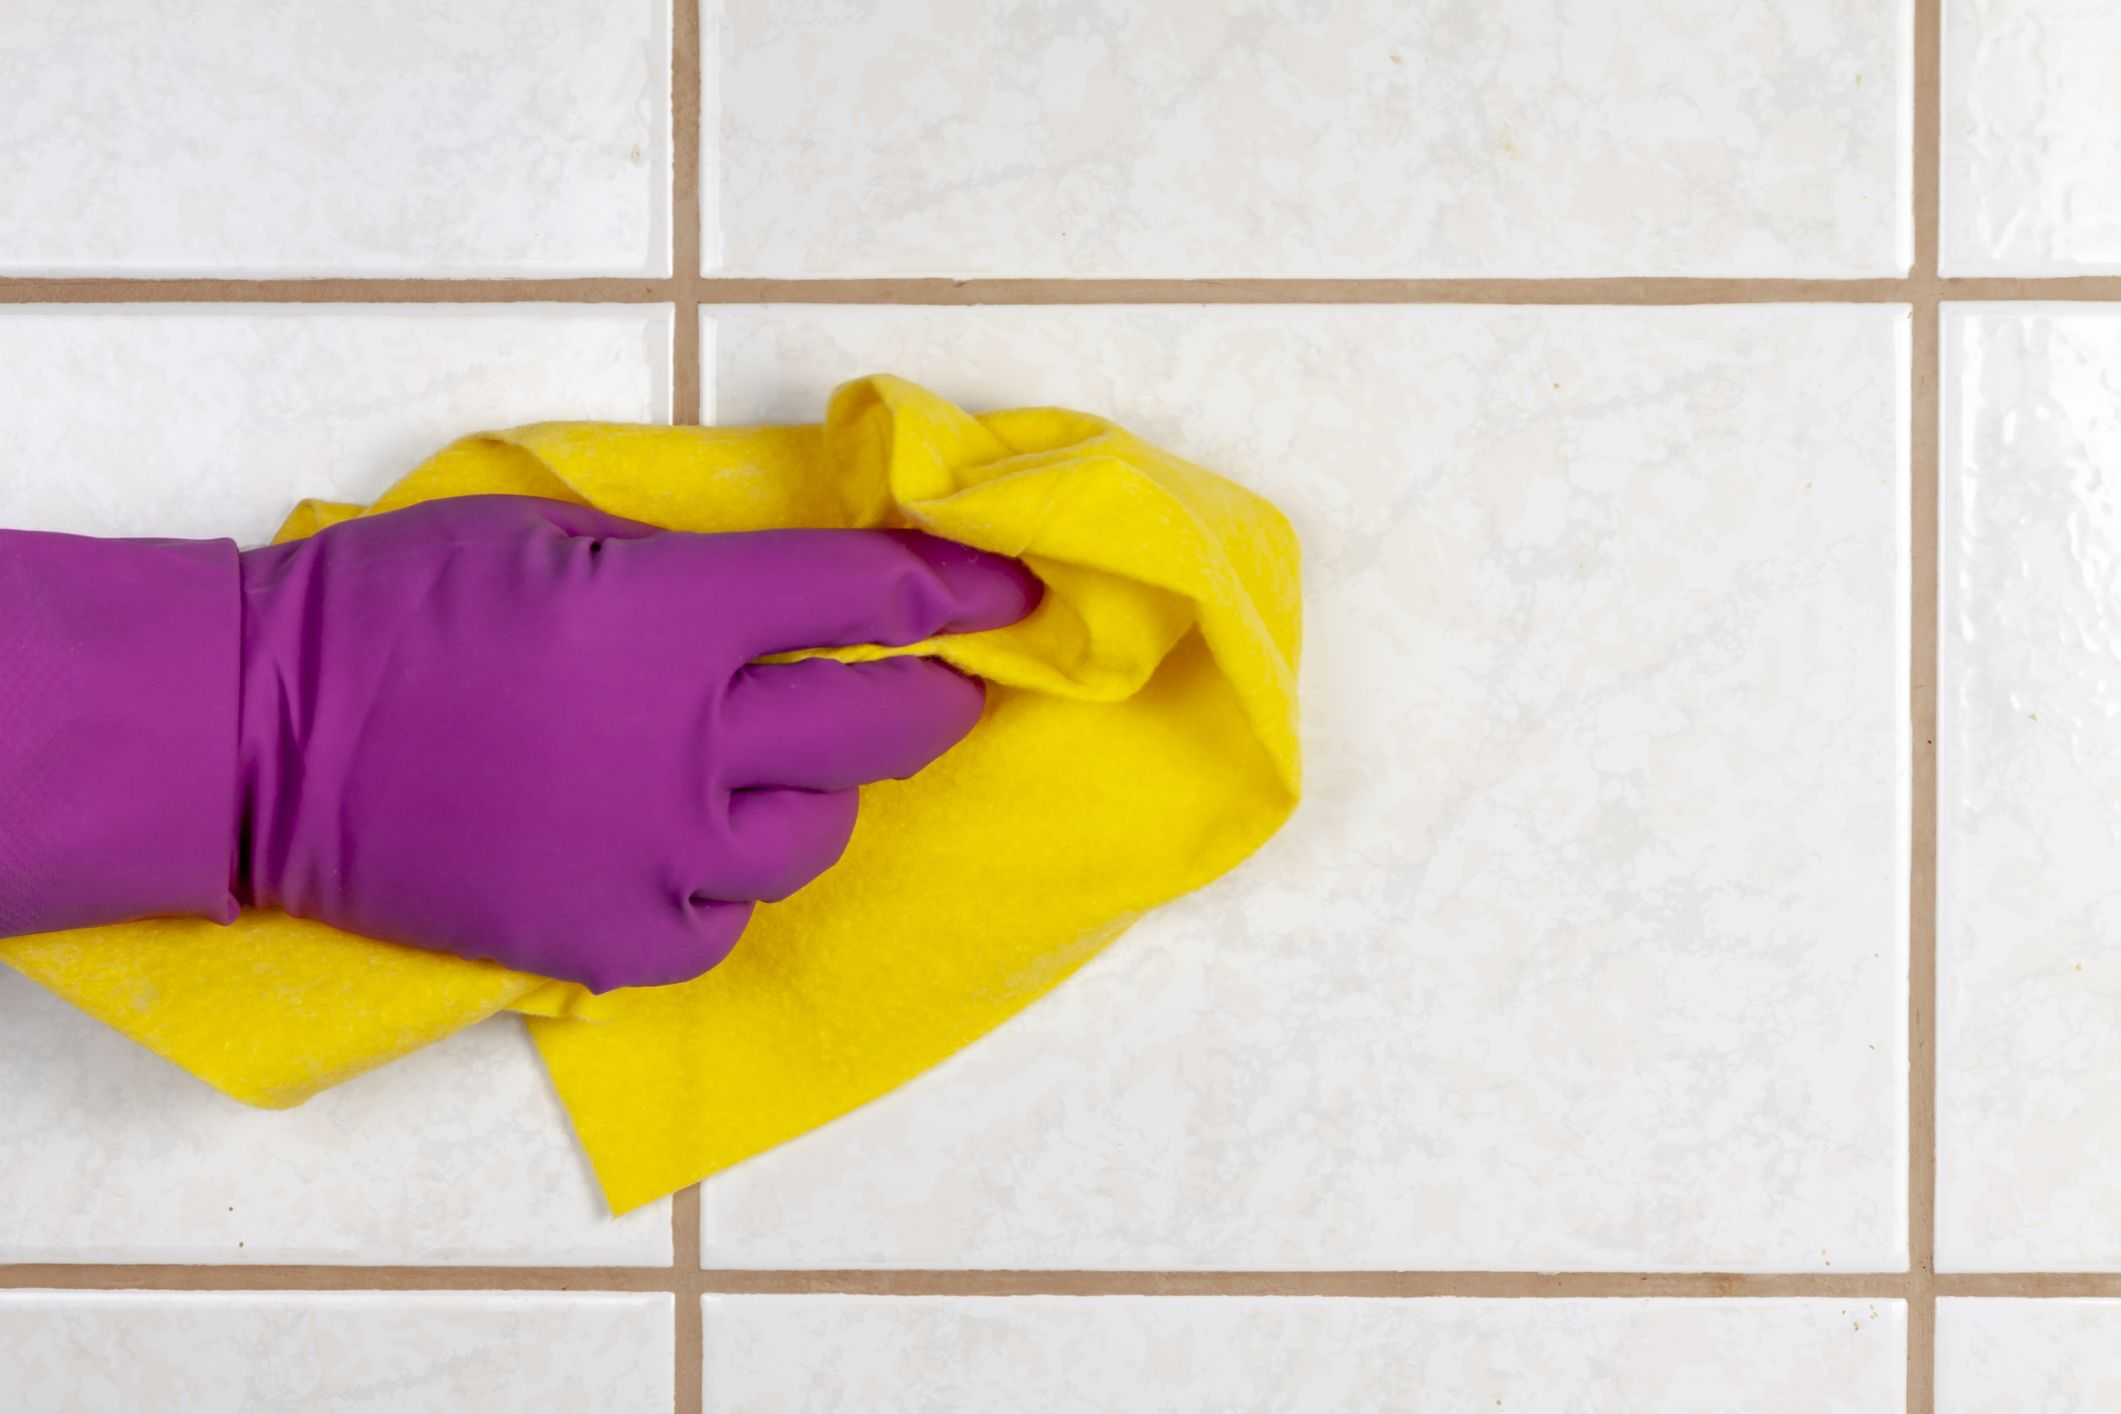 bathroom grout cleaning hack